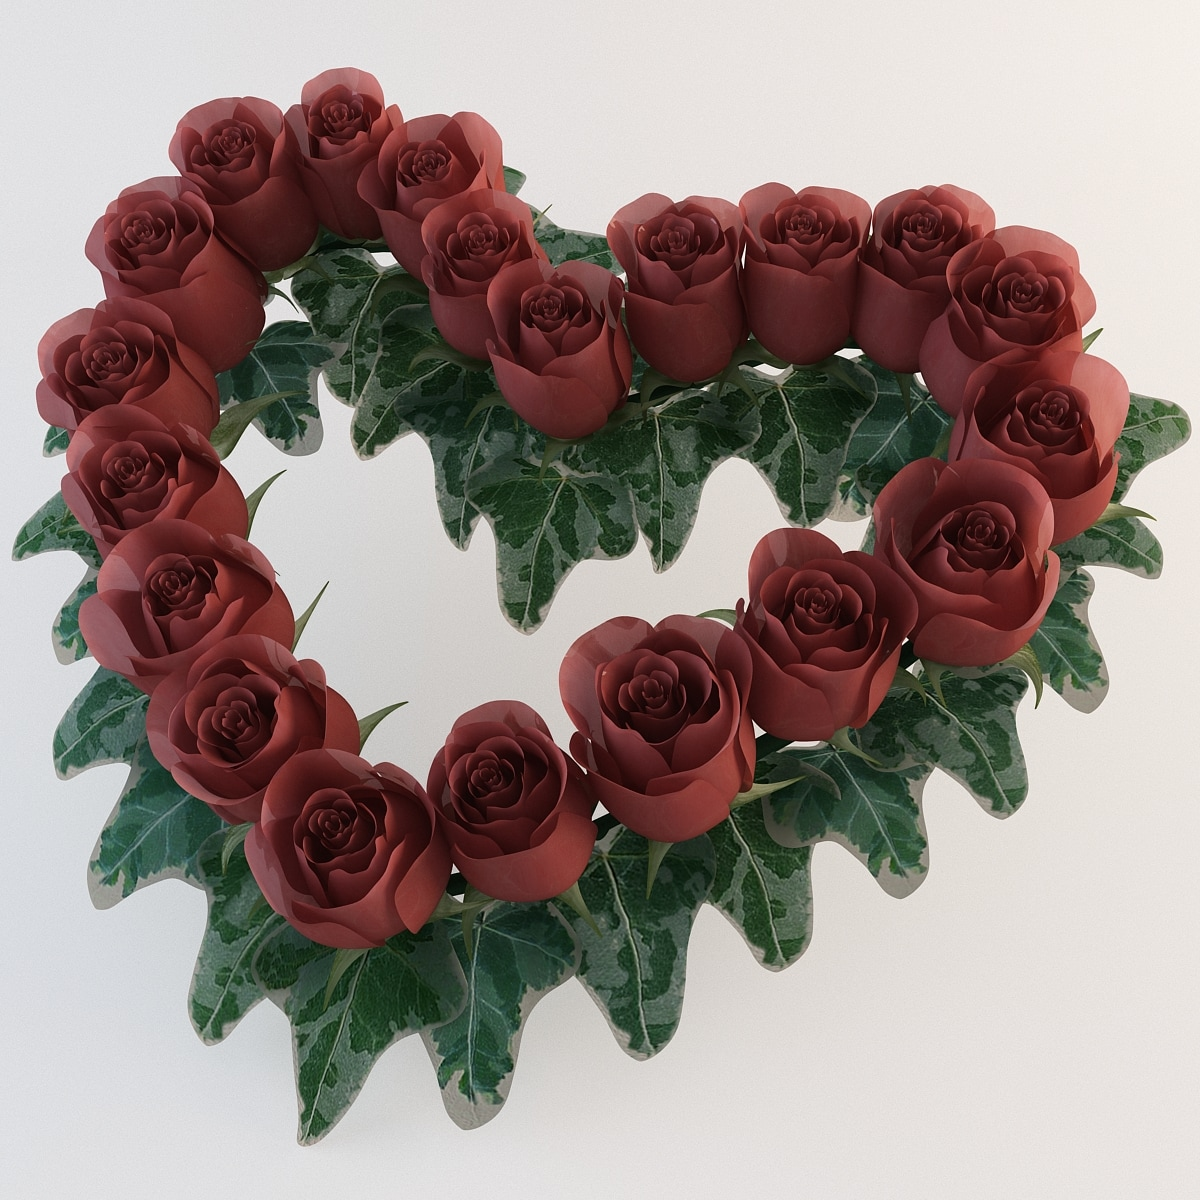 Heart Shaped Wreath with Roses